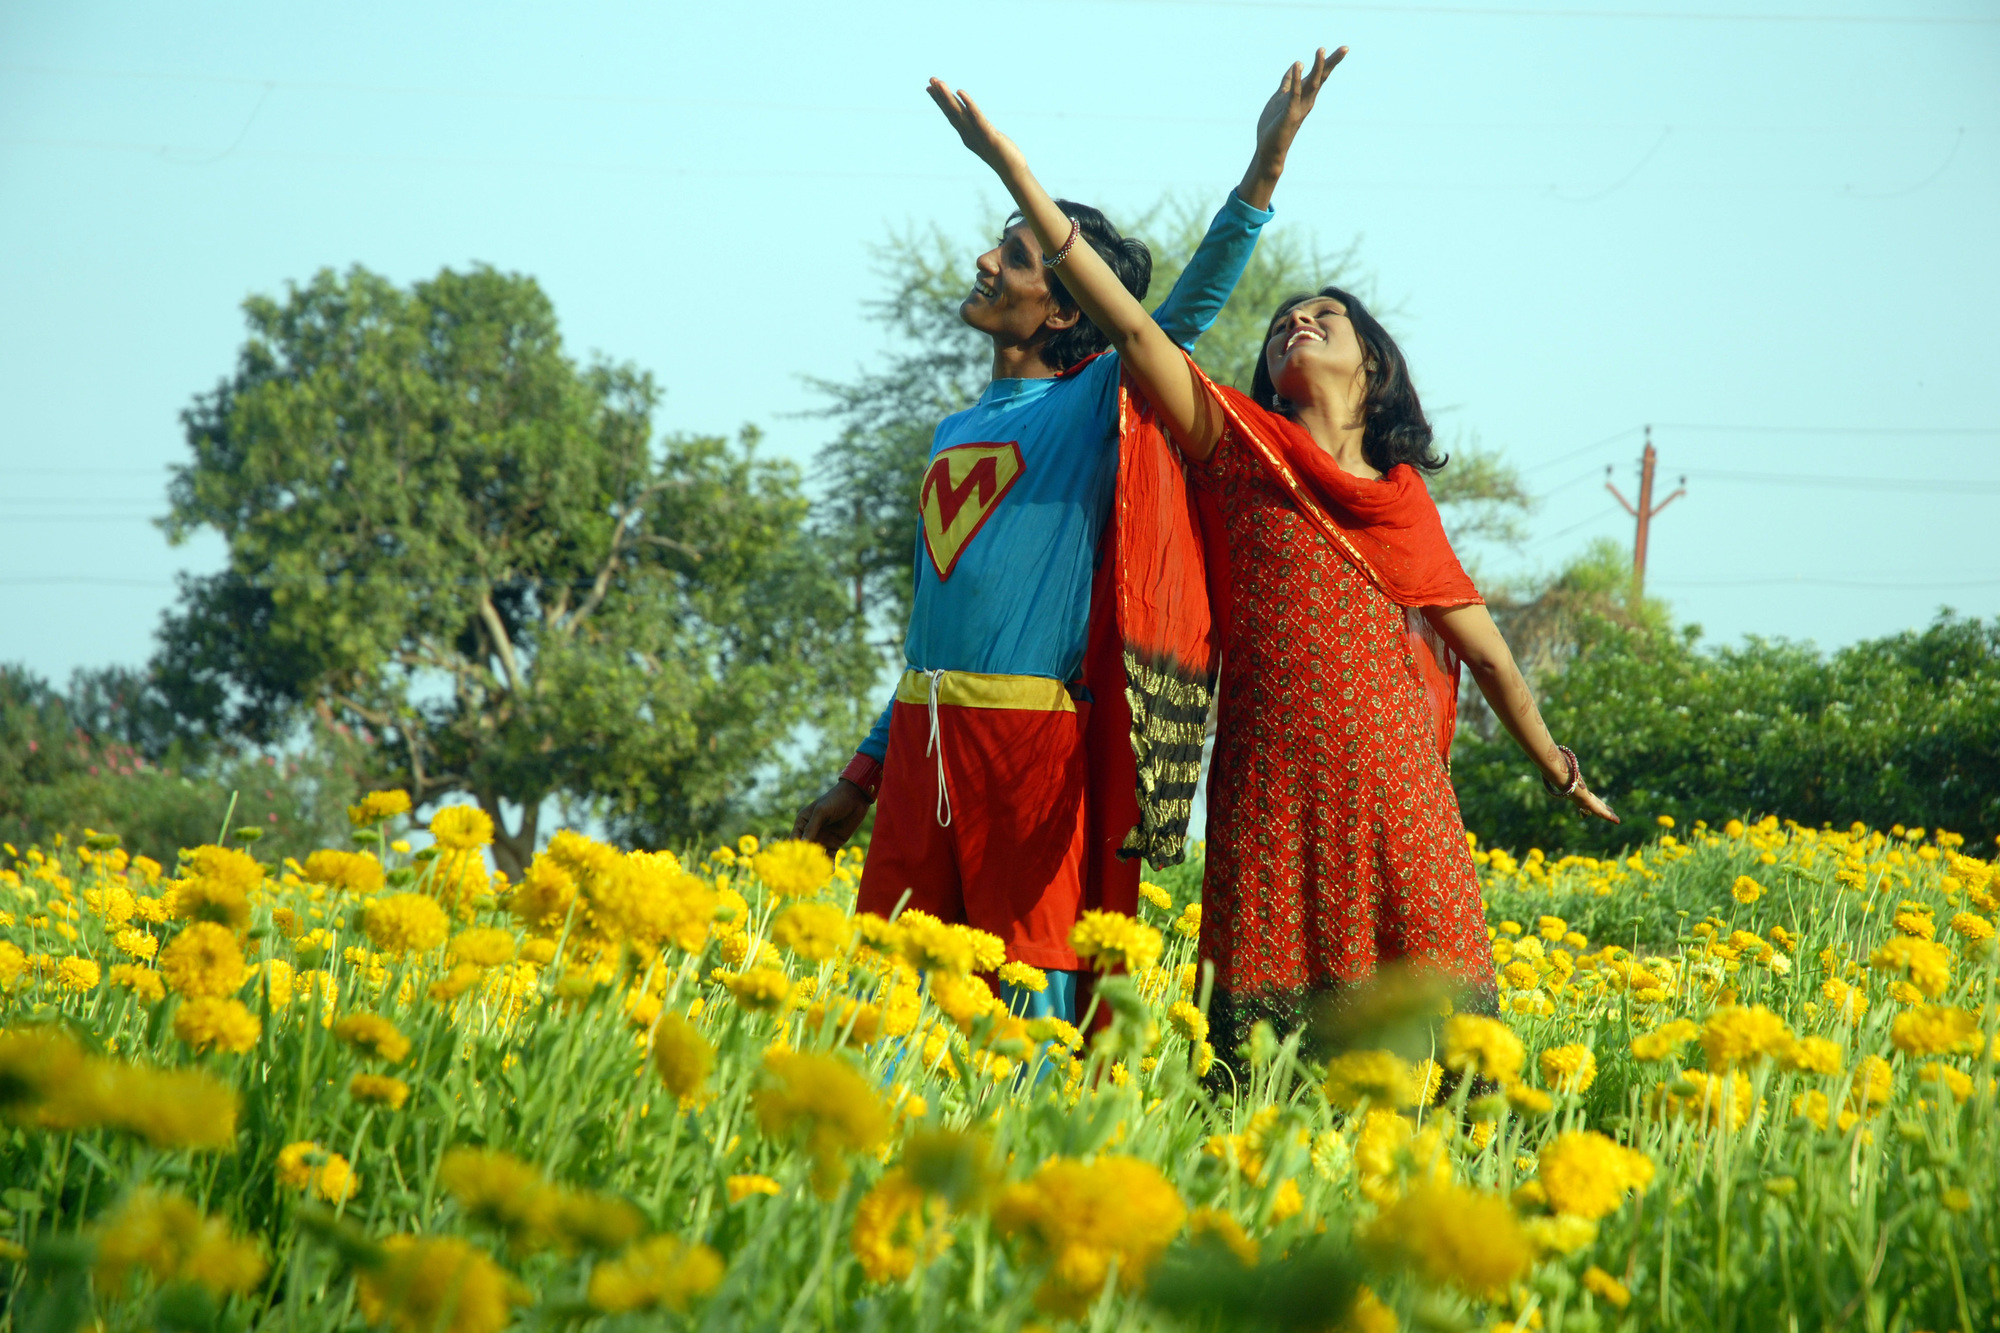 Supermen of Malegaon. 2009. India/Japan/South Korea/Singapore. Directed by Faiza Ahmad Khan